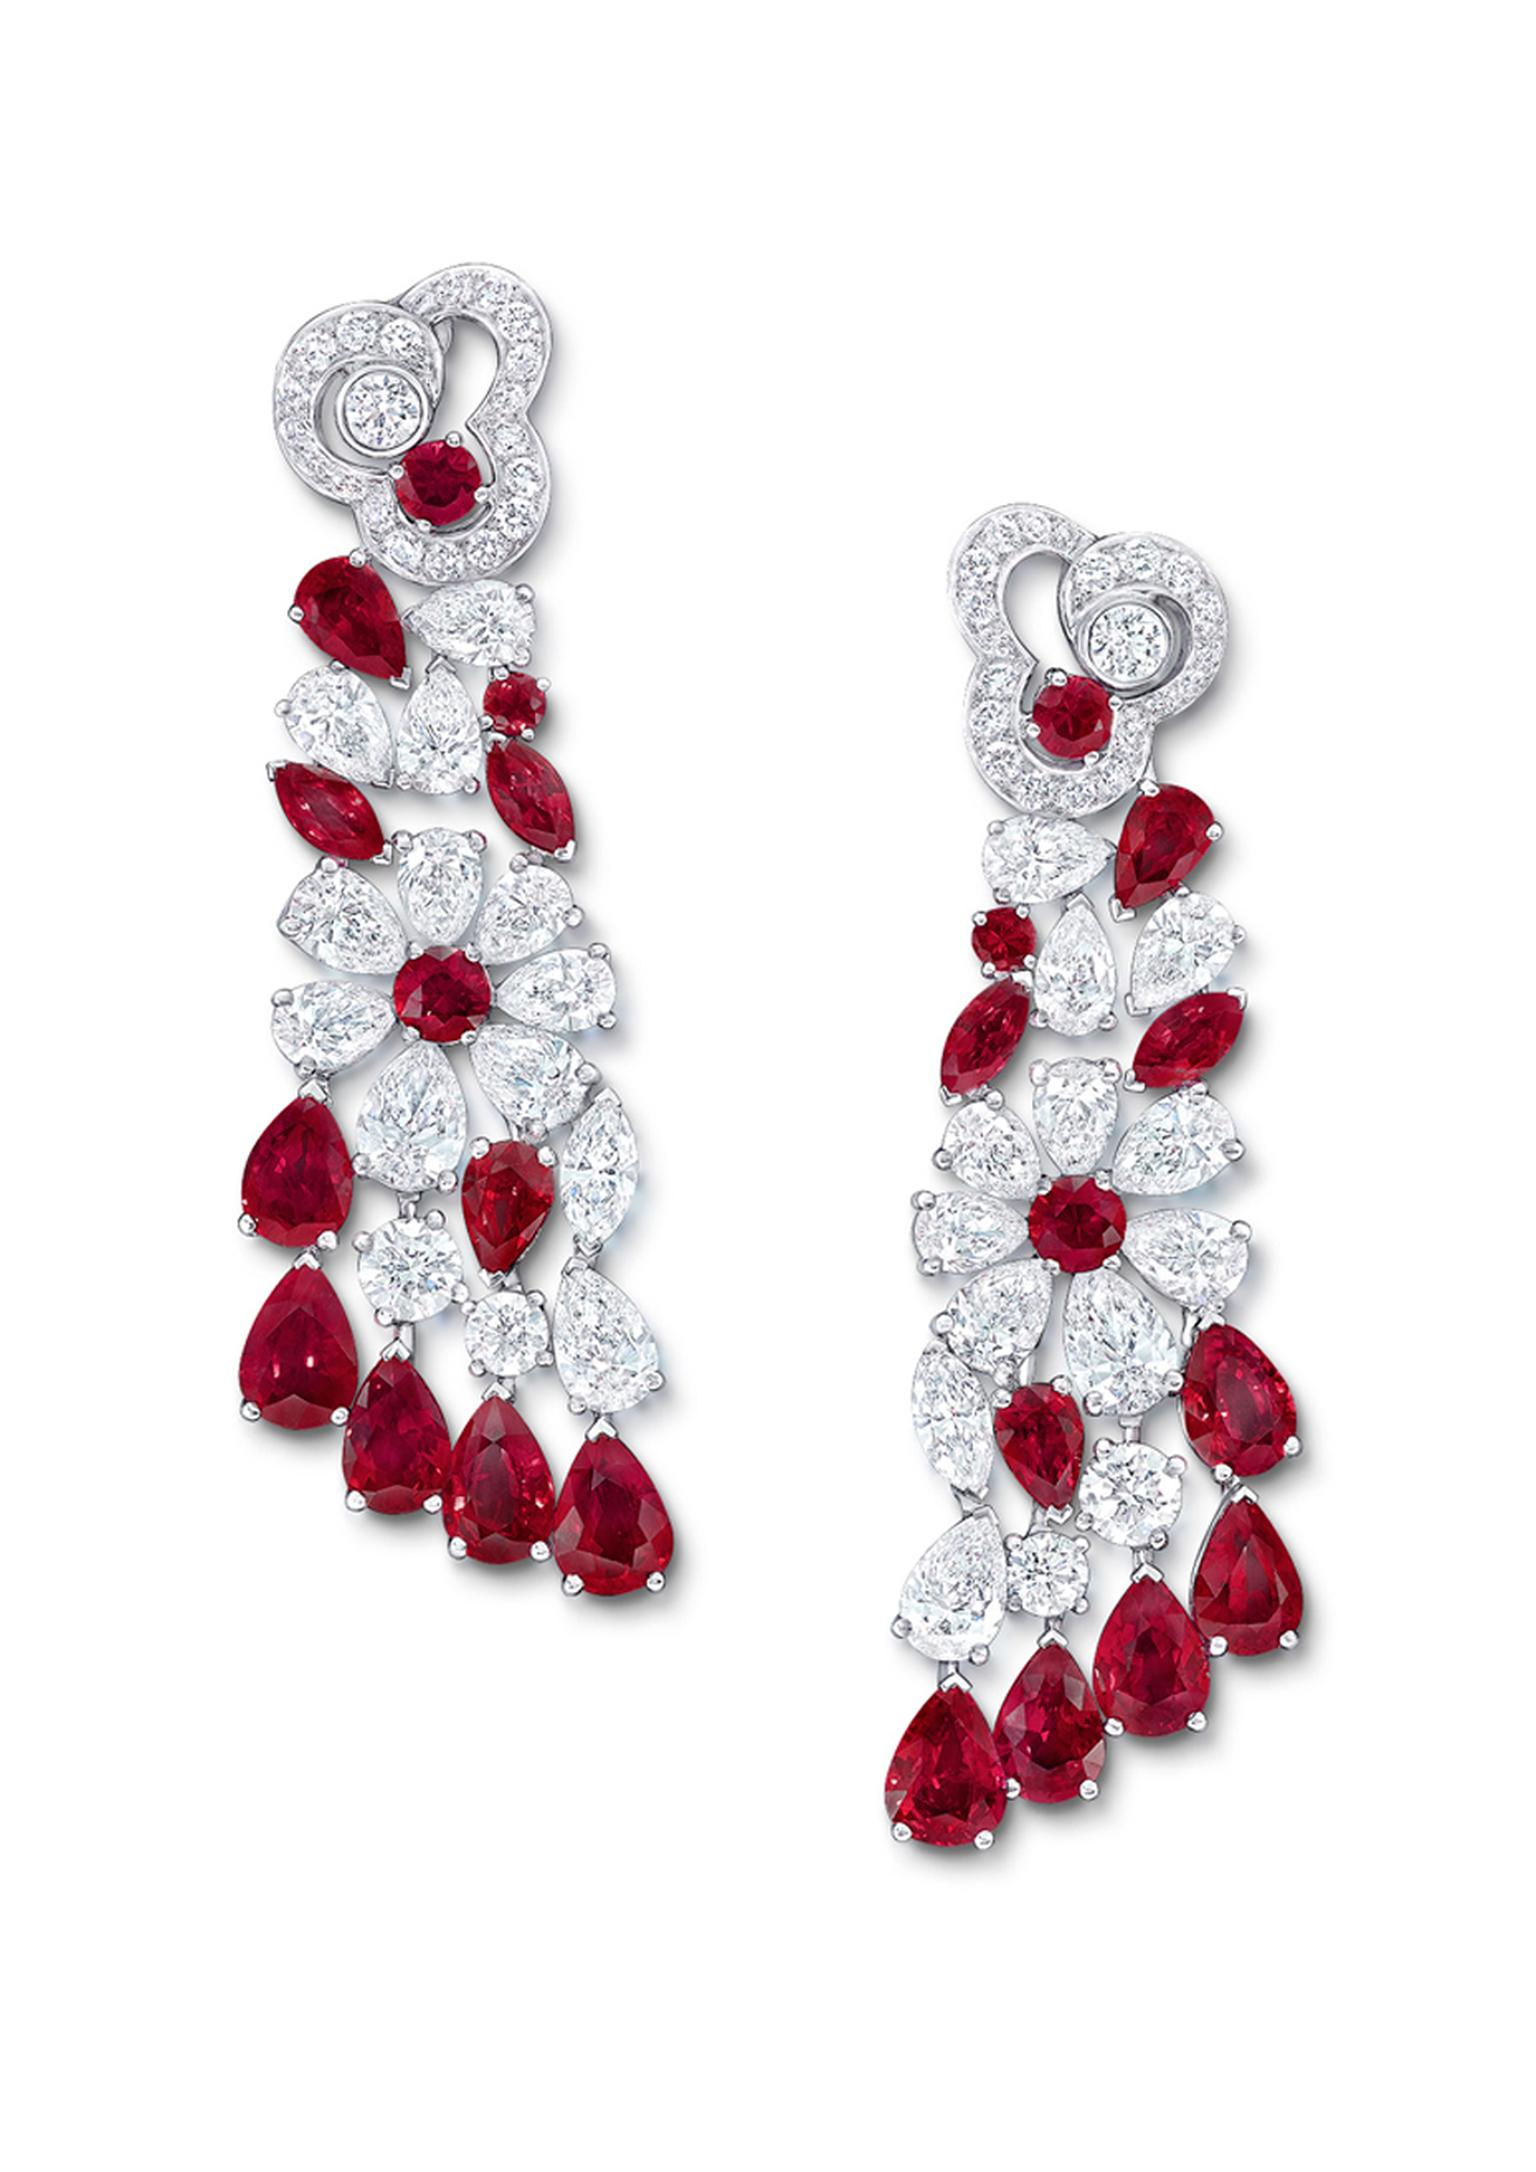 Graff Nuage collection drop earrings with rubies and diamonds in a minimal platinum setting.